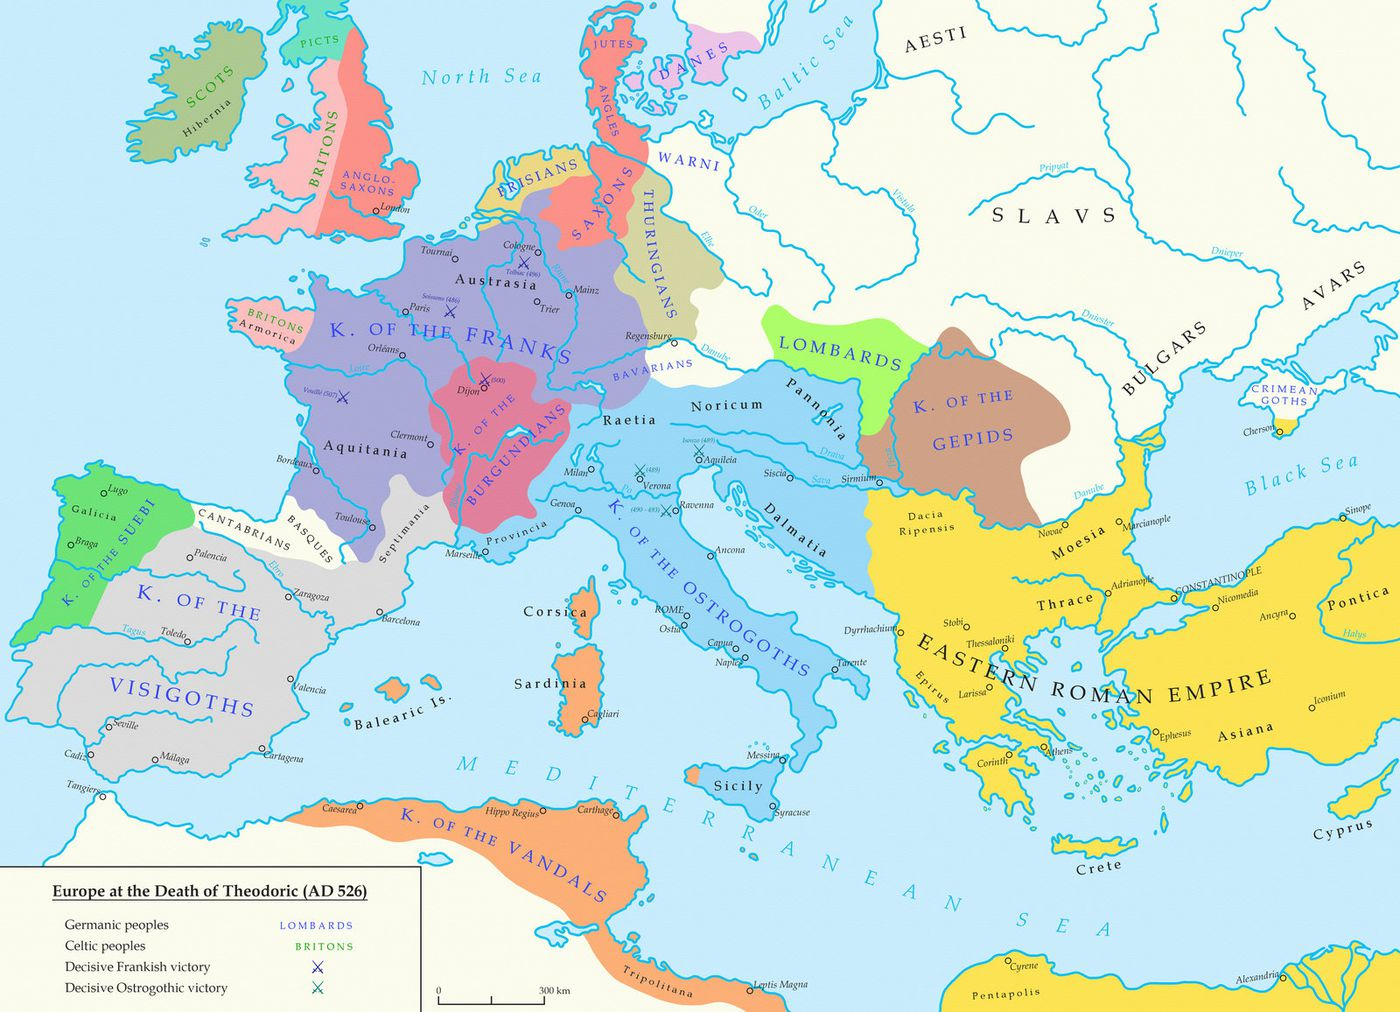 roman empire to 117 ad map The Roman Empire Explained In 40 Maps Vox roman empire to 117 ad map